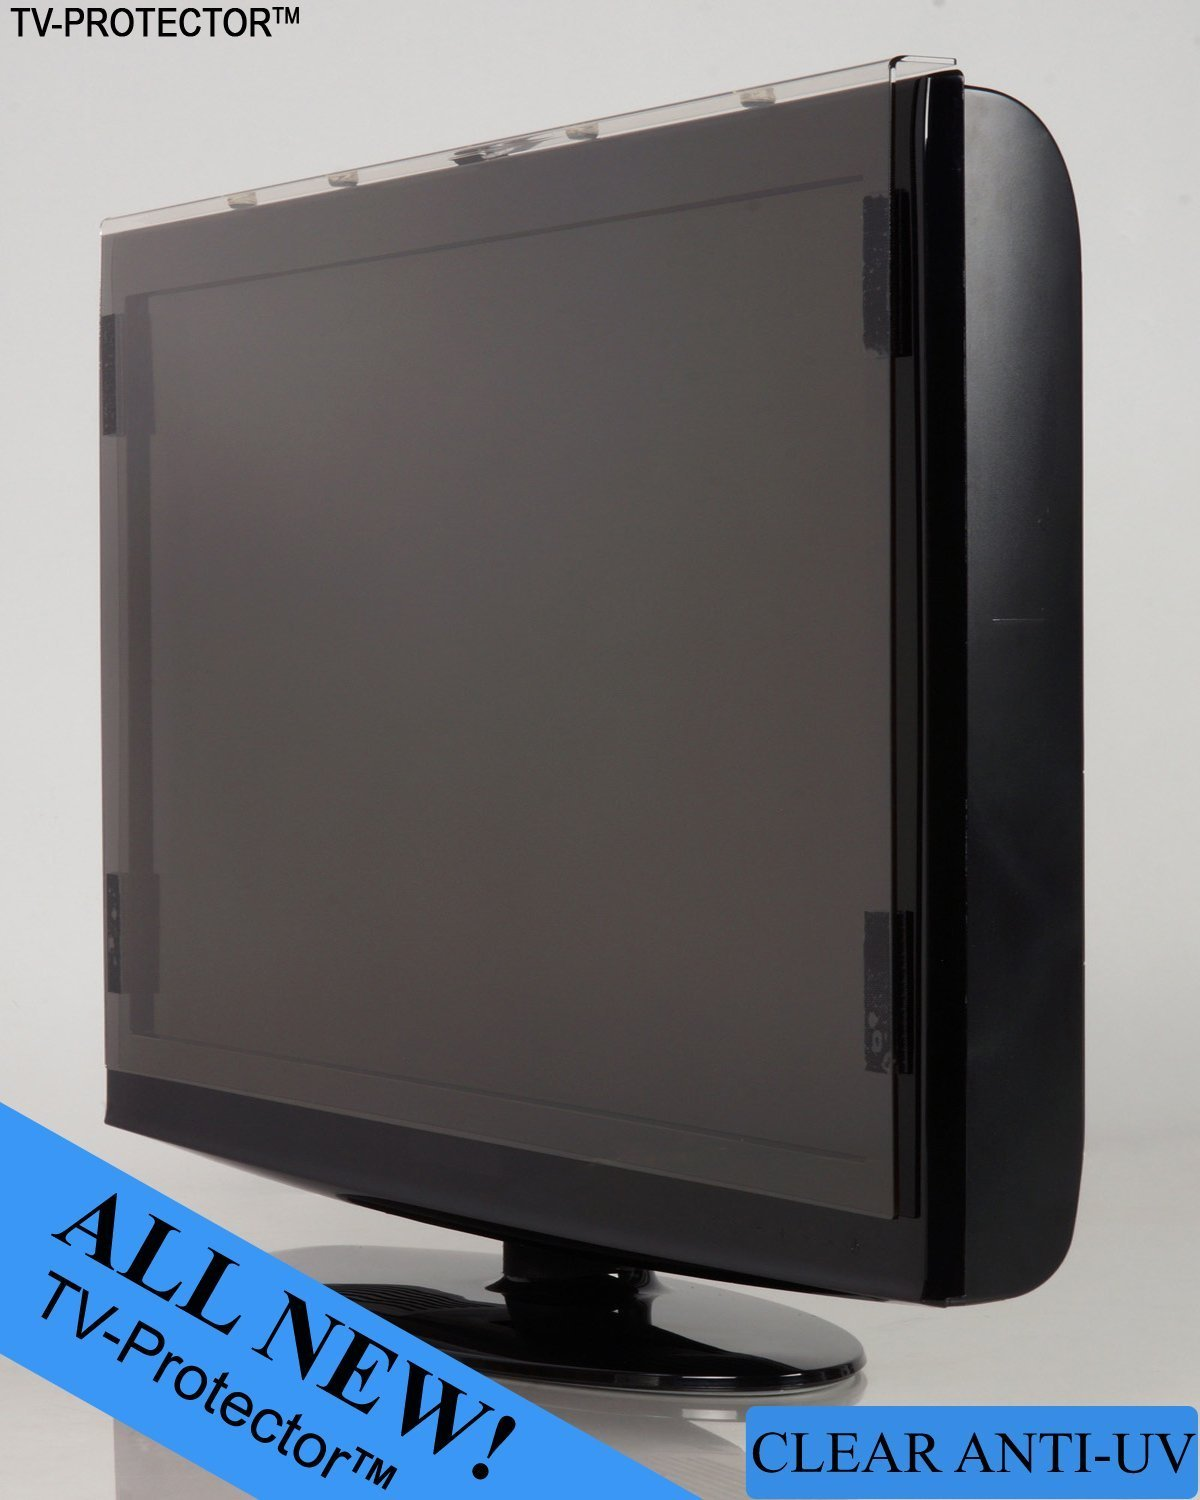 46 inch TV-ProtectorTM, The Best TV Screen Protector for LCD, LED and Plasma TVs by TV-Protector